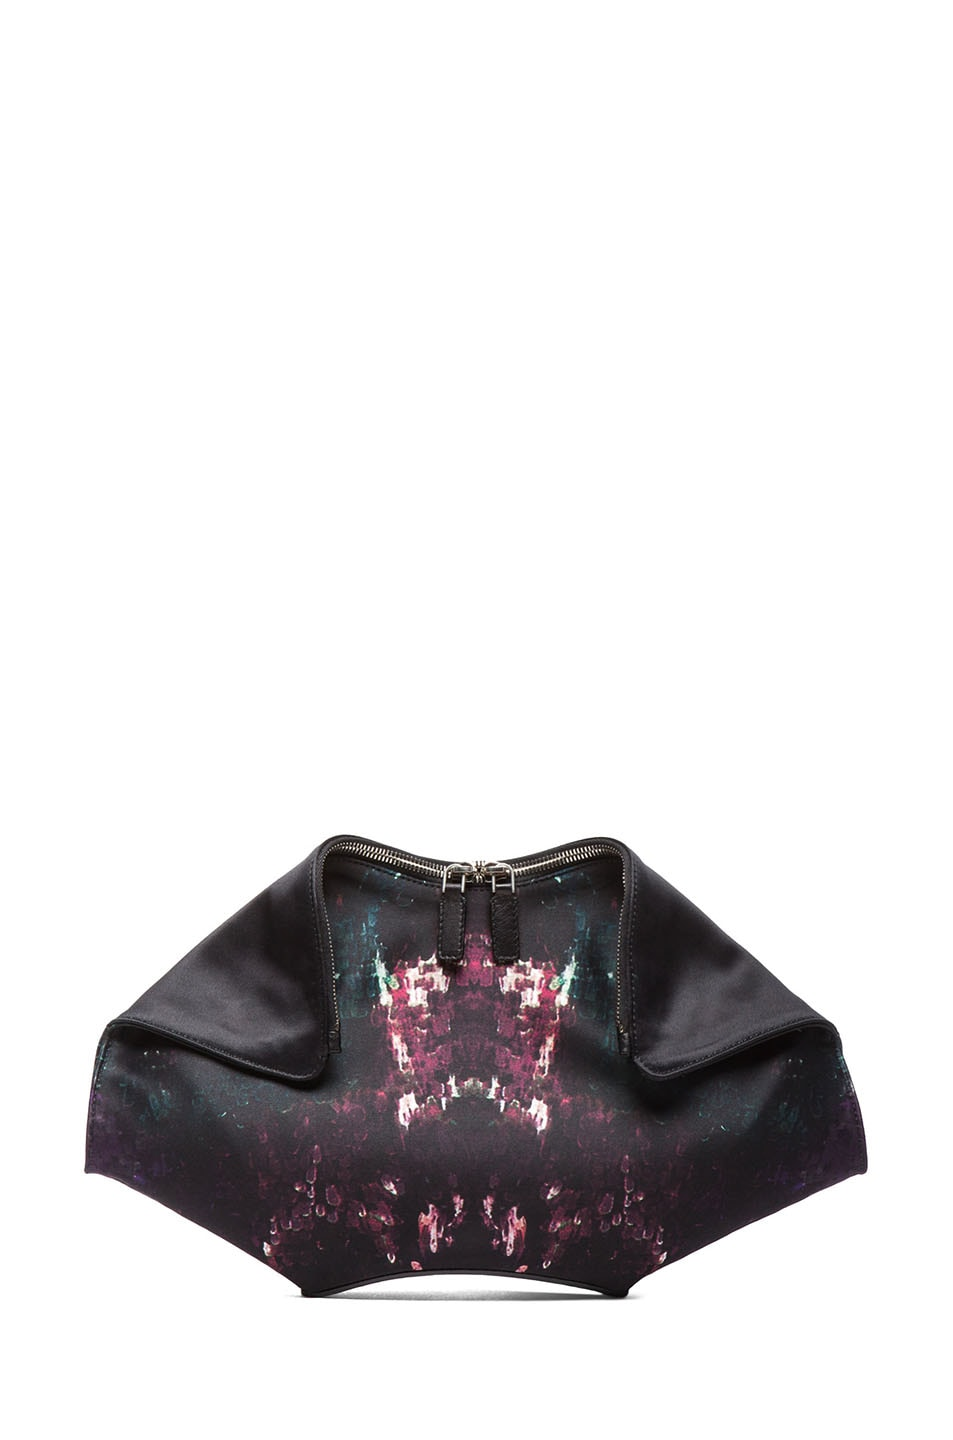 Image 1 of Alexander McQueen Moth Print De Manta Clutch in Multi